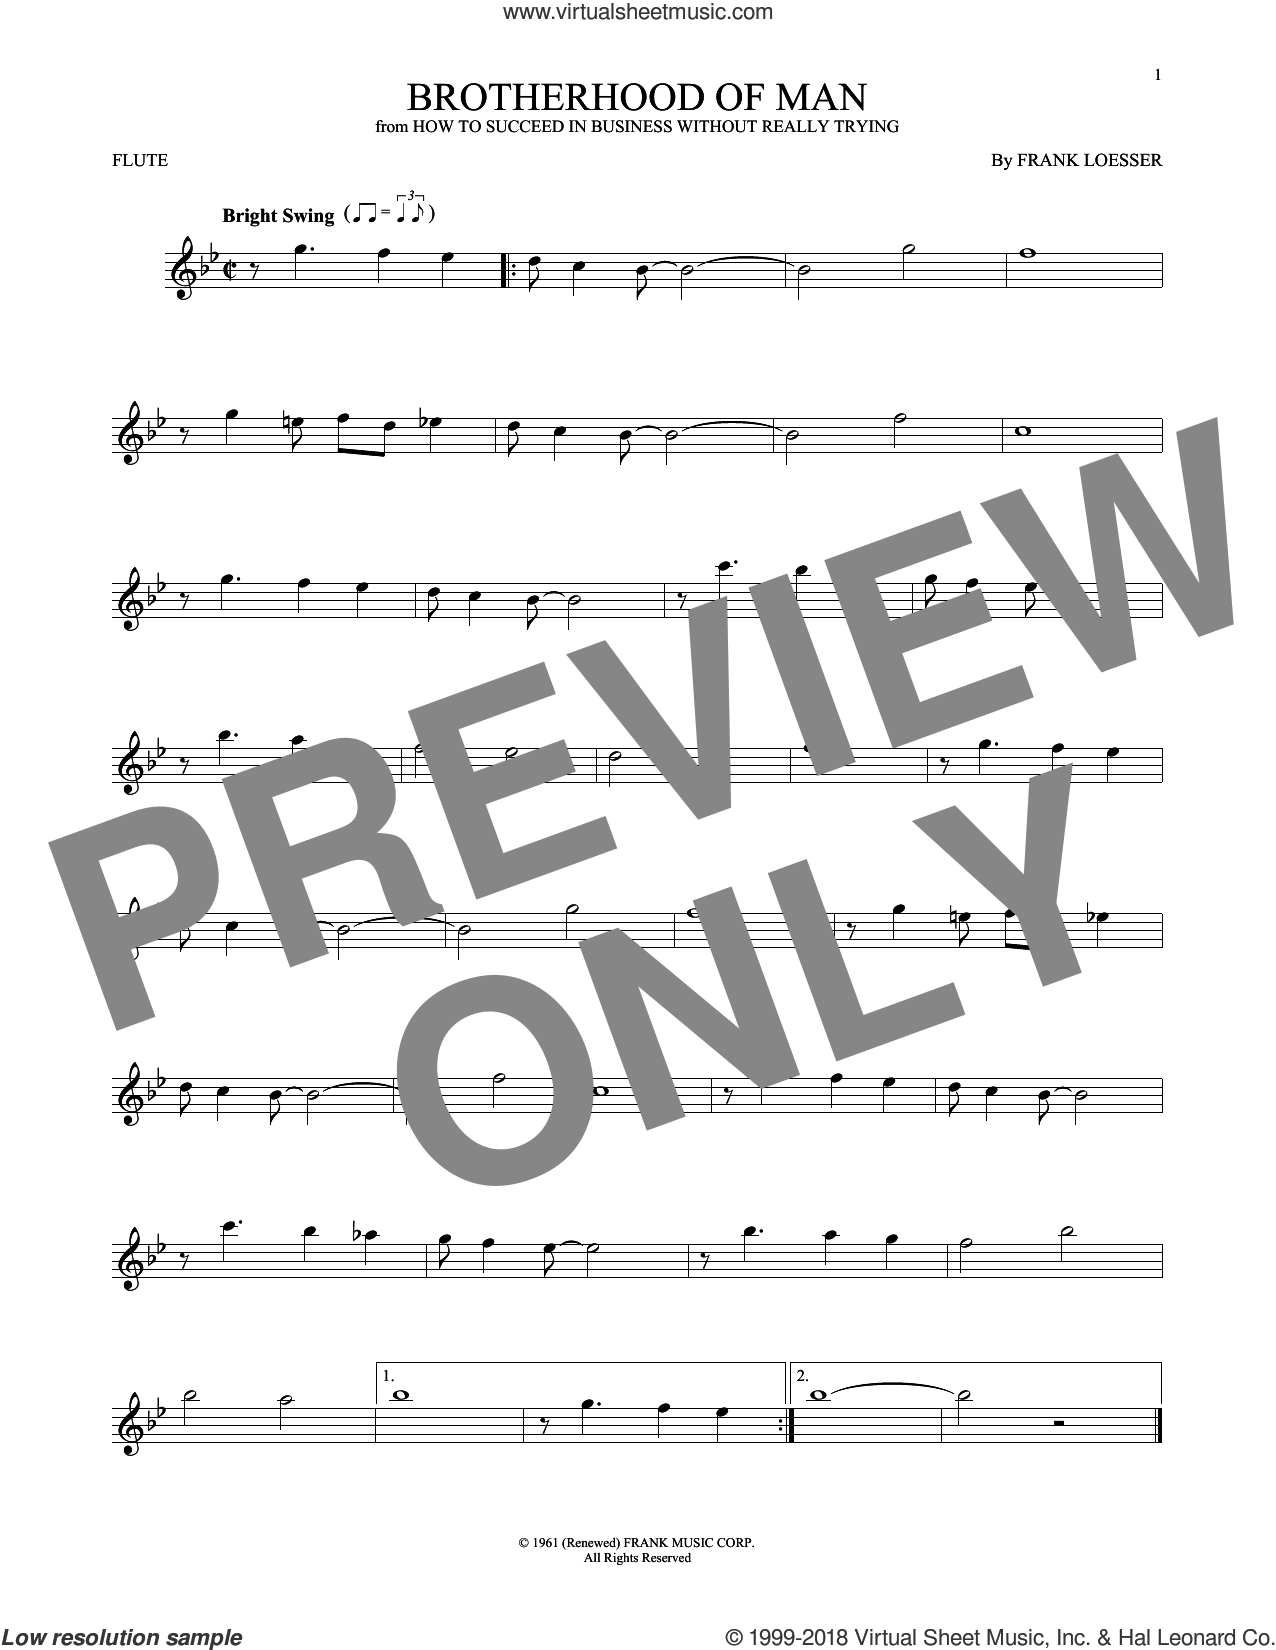 Brotherhood Of Man sheet music for flute solo by Frank Loesser, intermediate skill level